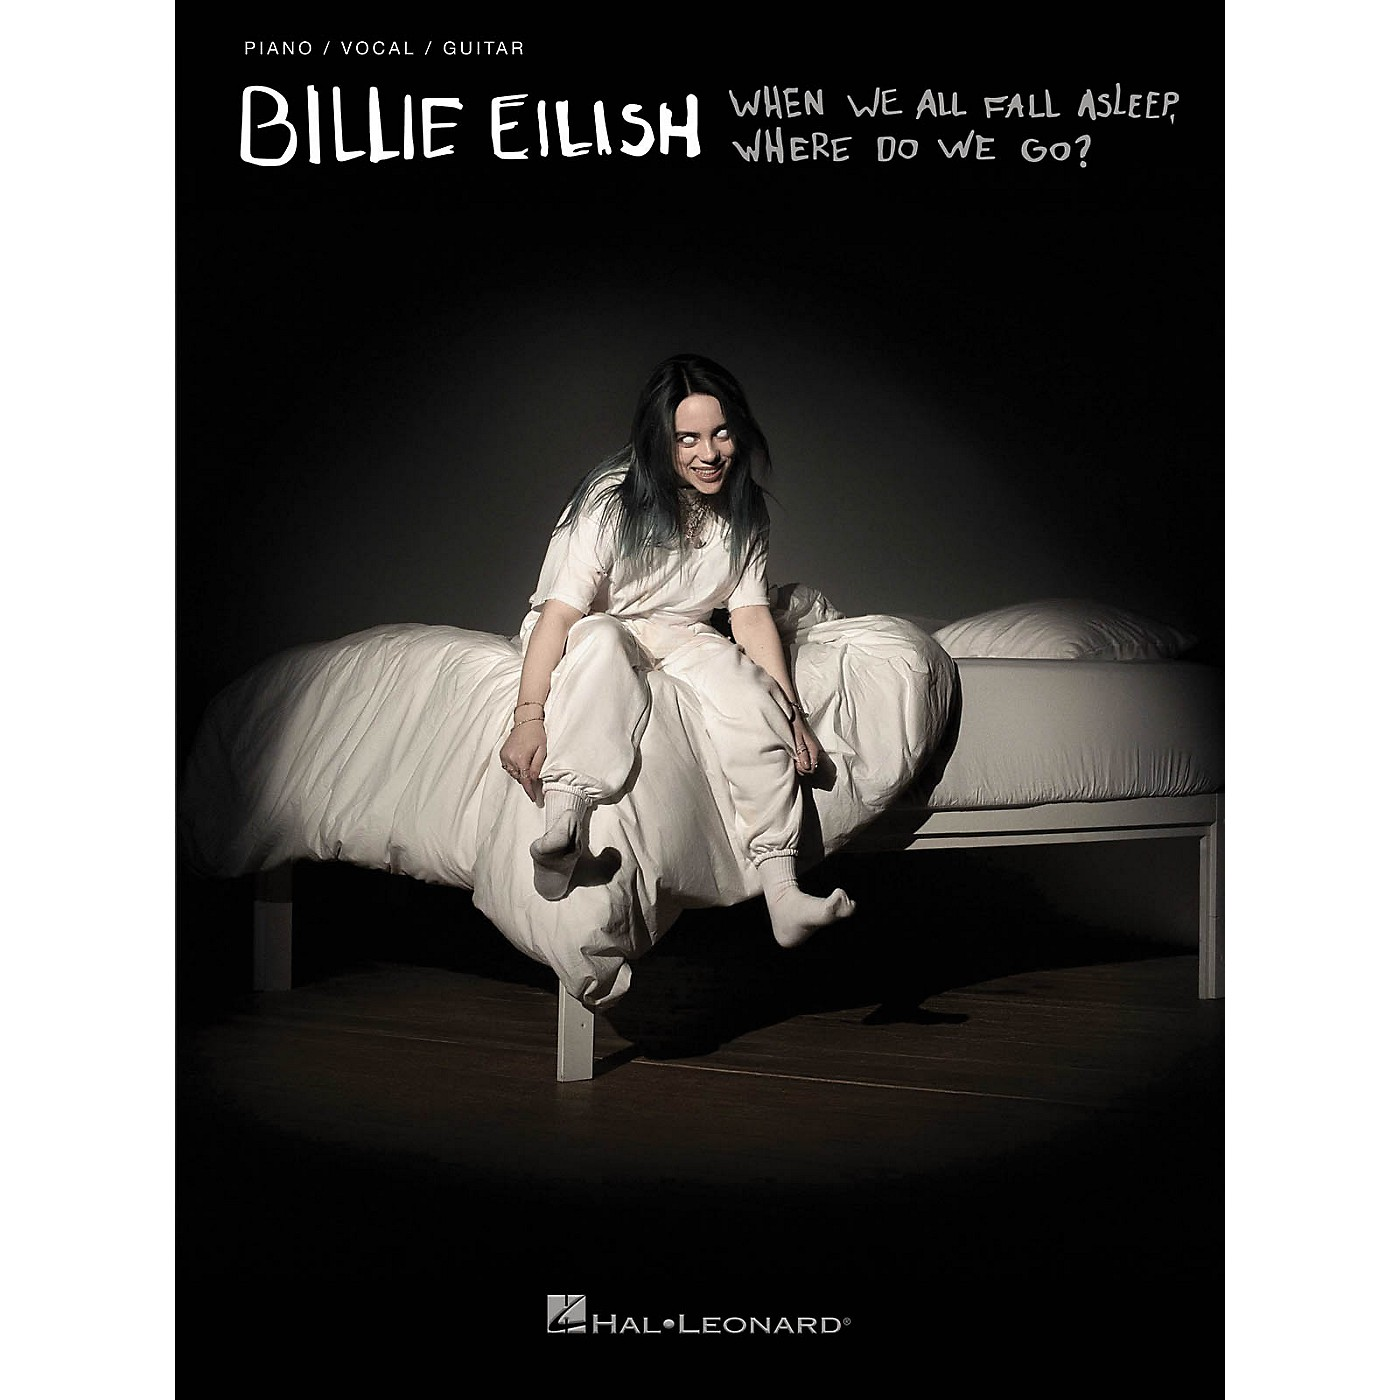 Hal Leonard Billie Eilish - When We All Fall Asleep, Where Do We Go? Piano/Vocal/Guitar Songbook thumbnail